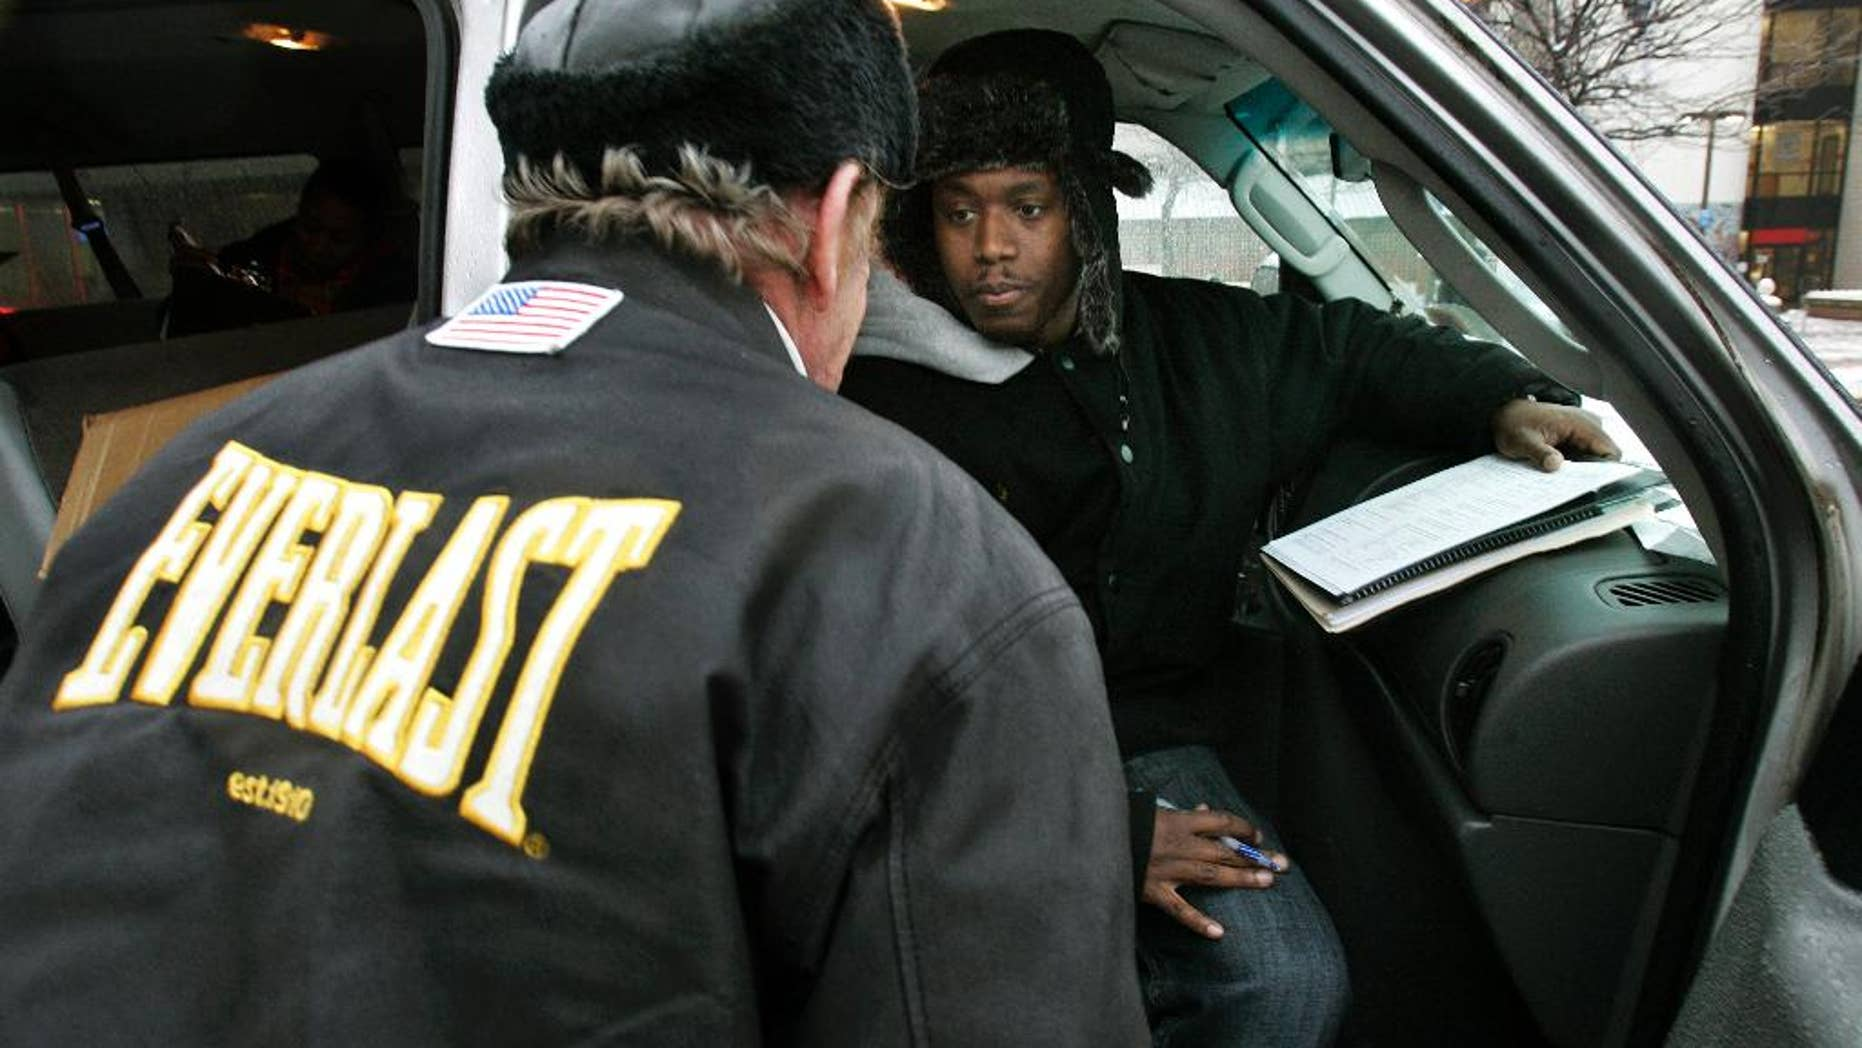 """FILE -  In this Wednesday, Jan. 28, 2009 file photo, Harold """"Hal"""" Miller, right, listens to a homeless man while preparing census forms for homeless people in Camden, N.J. Miller, well known in Camden for working with the city's homeless population, has been arrested and charged with running a drug market in the city. In an indictment dated Sept. 1, federal authorities say 38-year-old Harold """"Hal"""" Miller ran an operation that sold heroin and crack on Pfeiffer Street in East Camden. (AP Photo/Mel Evans, File)"""